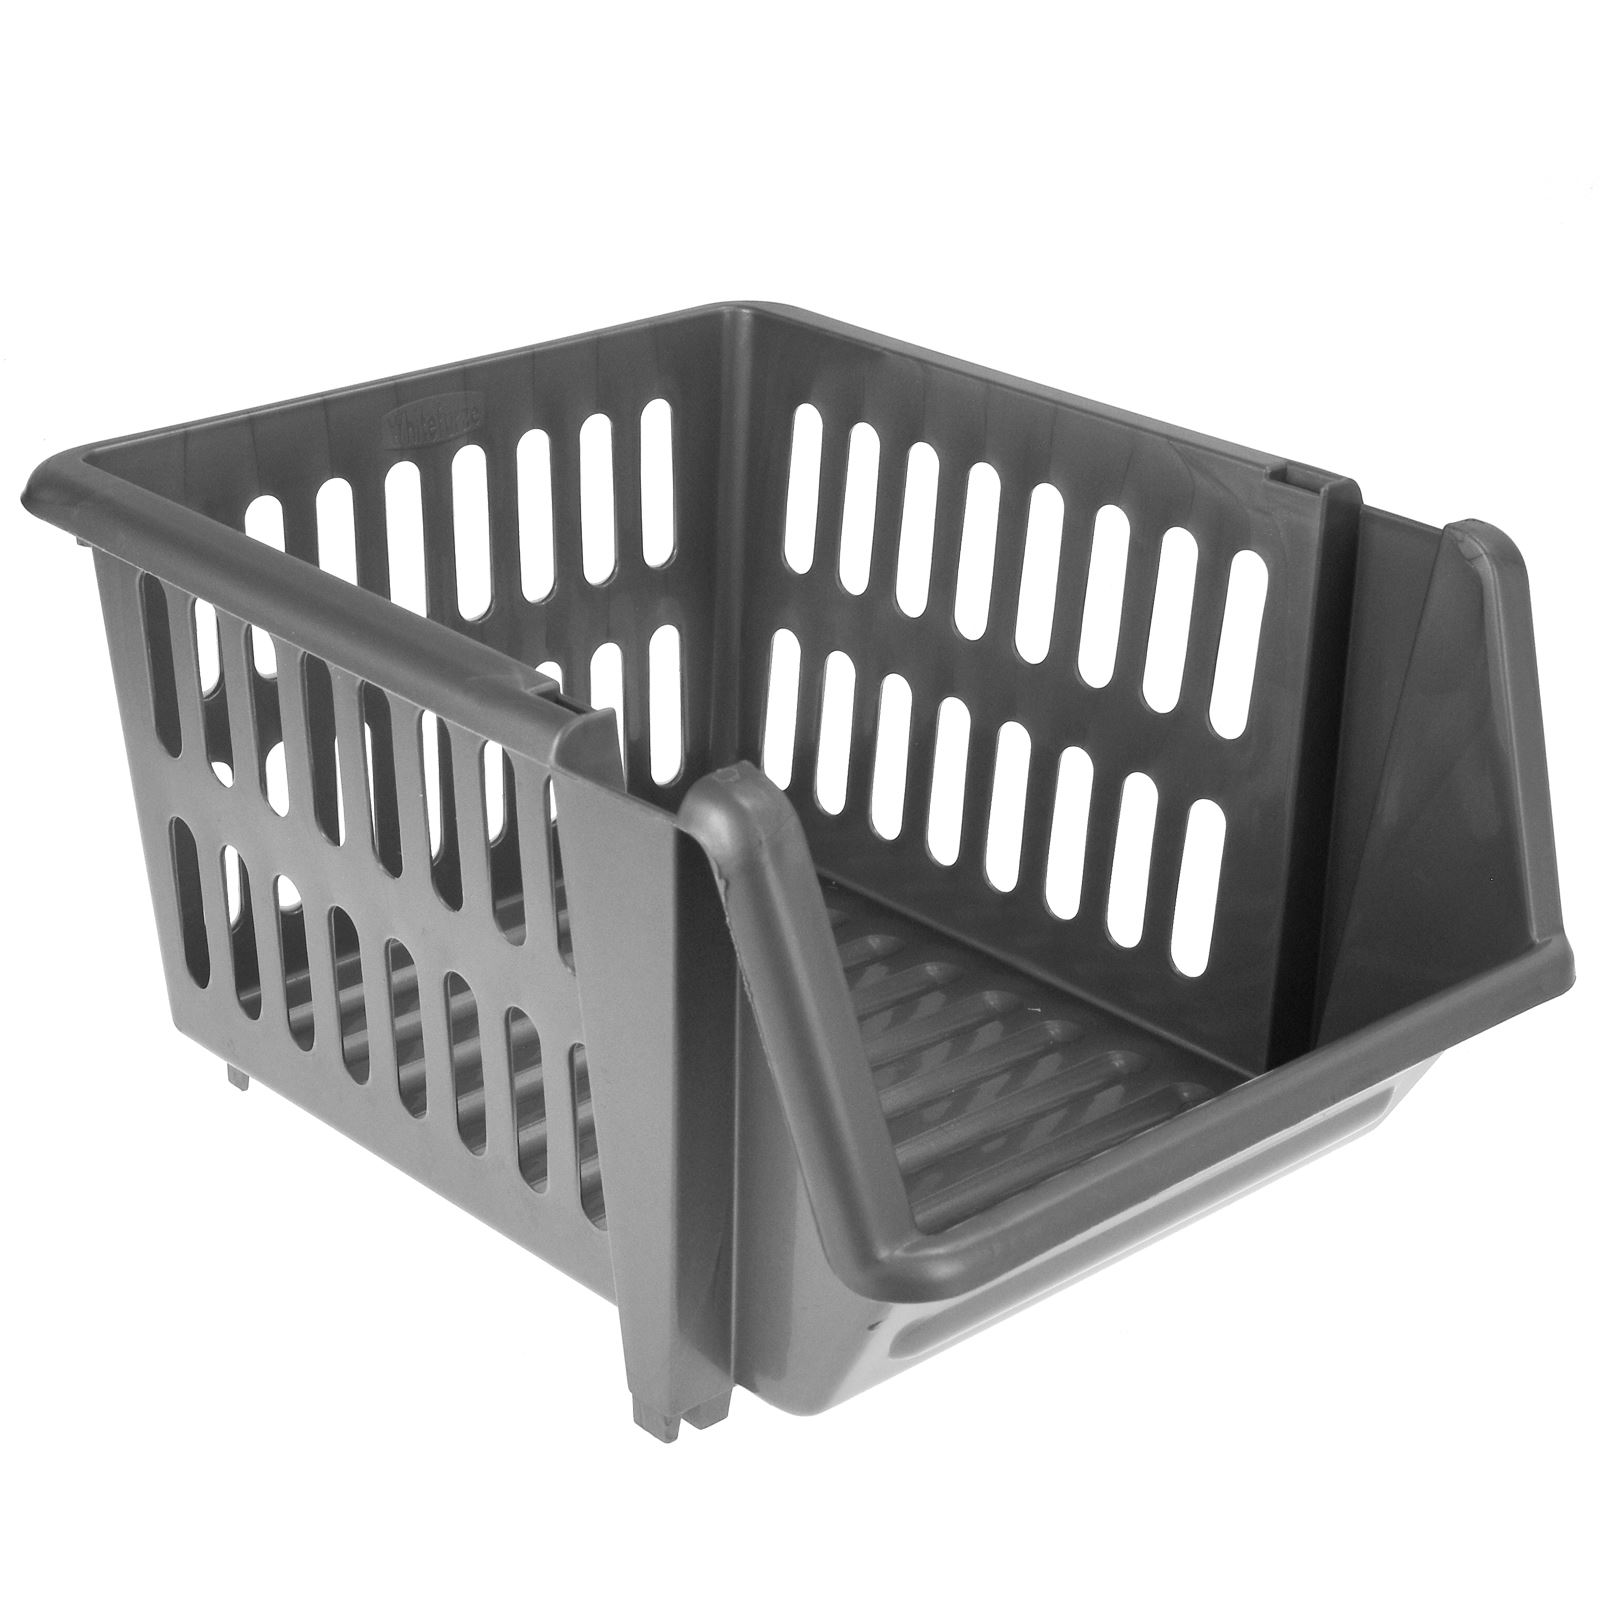 3-Tier-Plastic-Stacking-Basket-Set-Kitchen-Office-Storage-Rack-Stackable-Boxes thumbnail 10